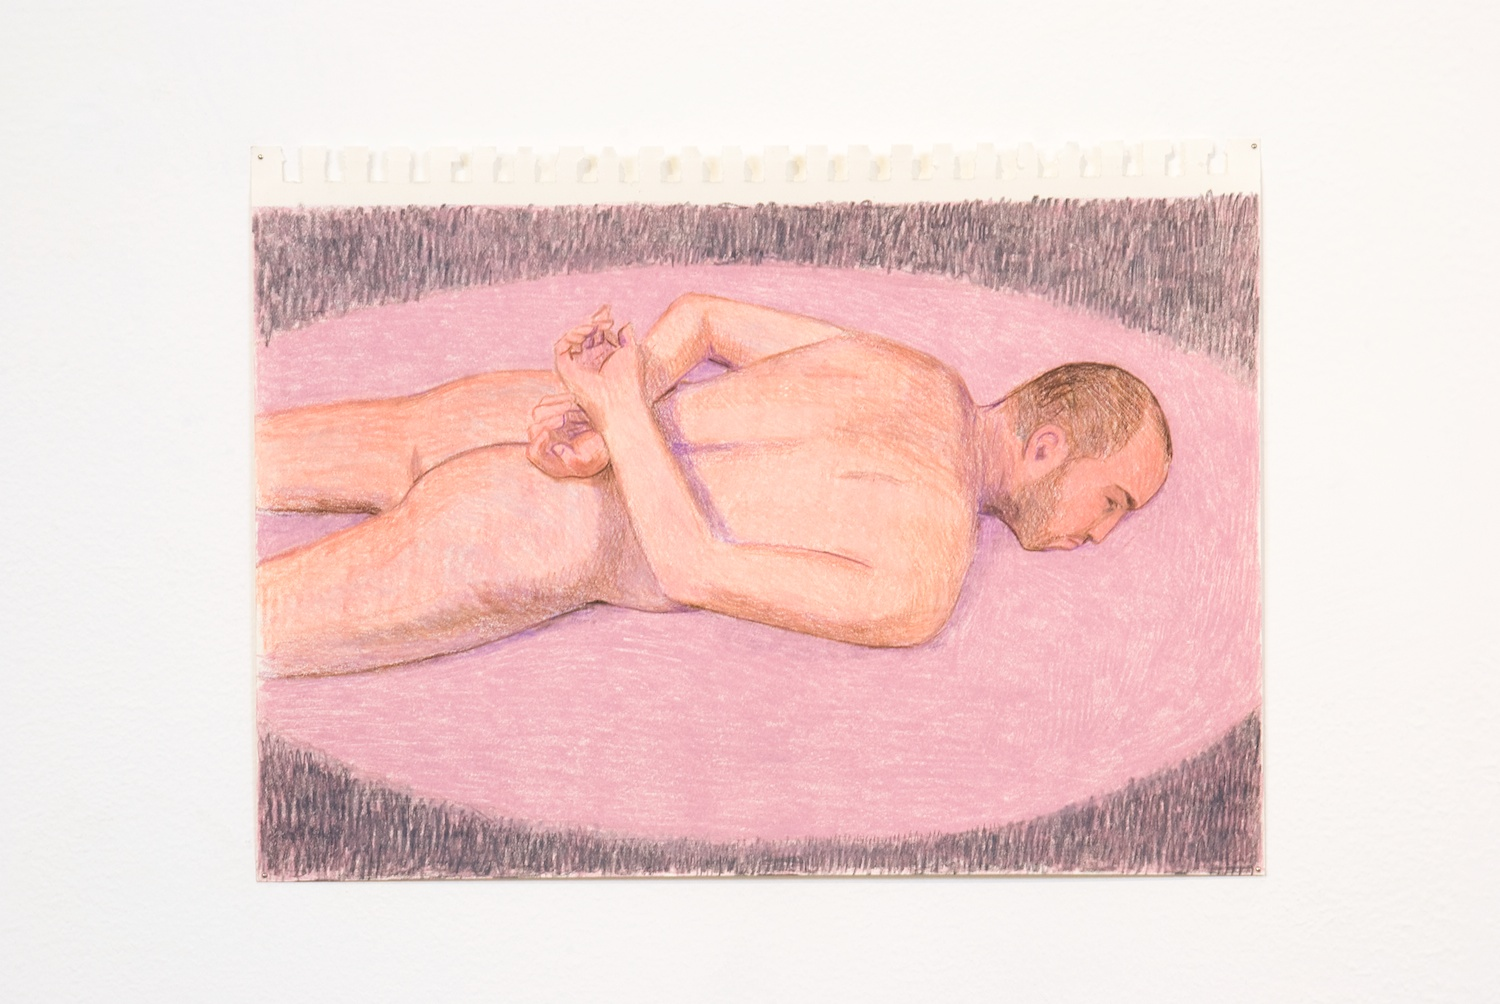 Elijah Burgher  JCDC as Sebastian  2009 Colored pencil on paper 8h x 12w in EB003